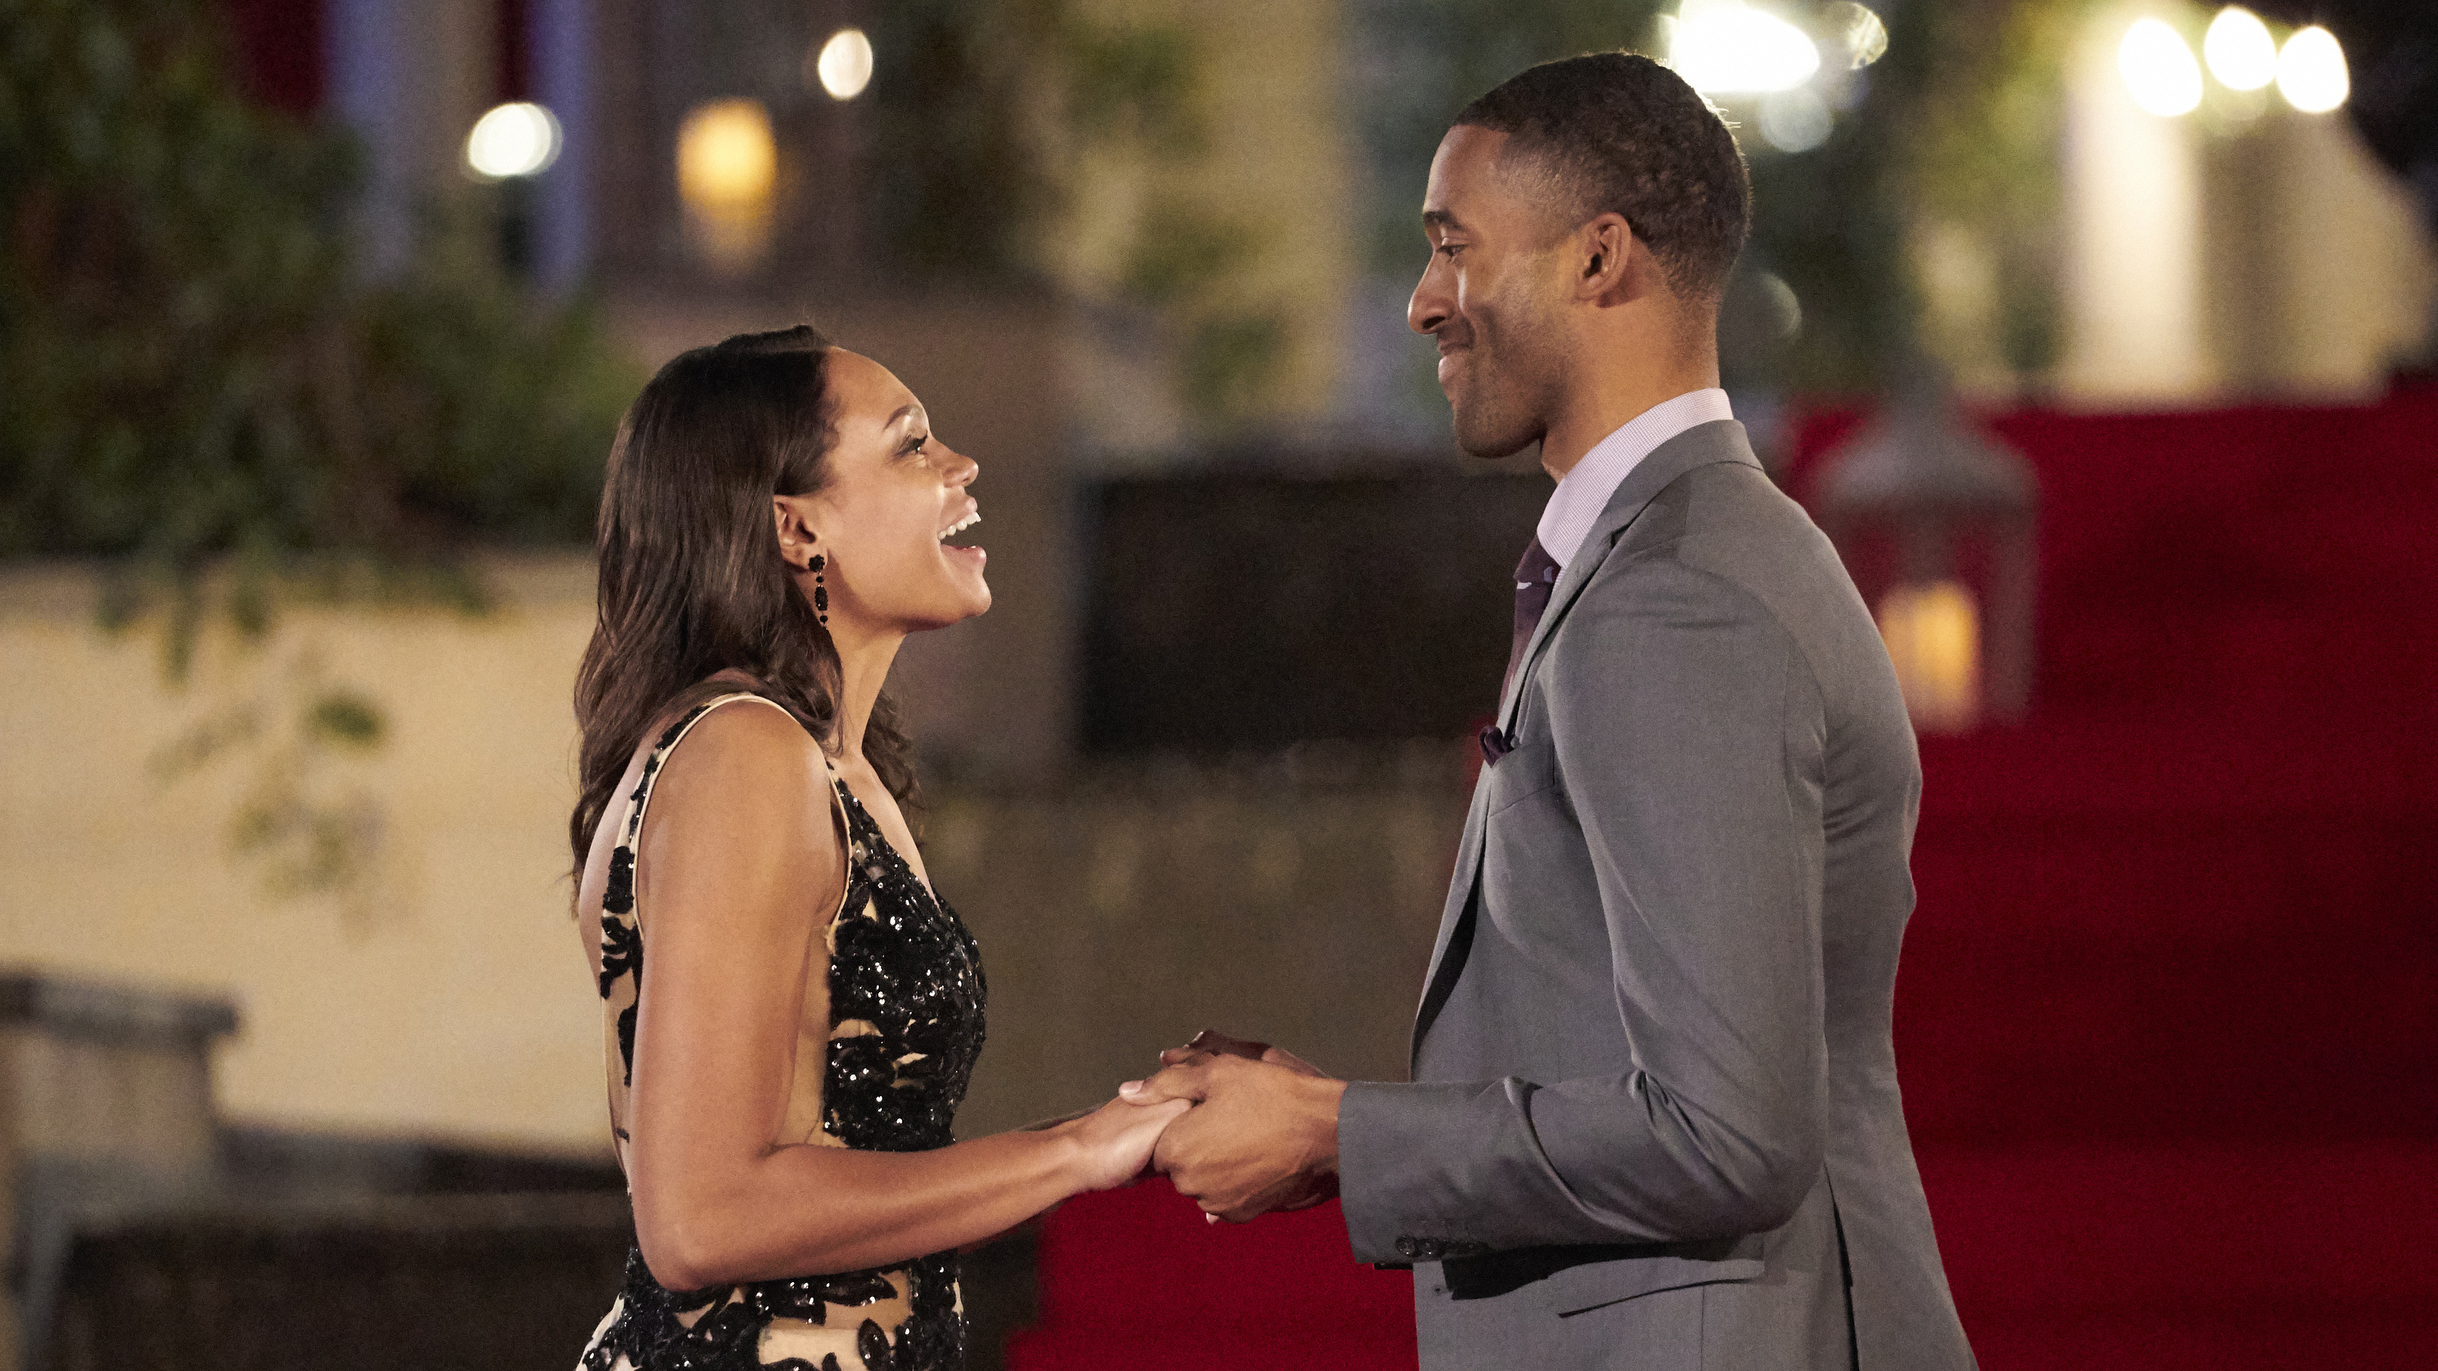 'The Bachelor' Recap: Conflict Arises as New Arrivals Vie for Matt James